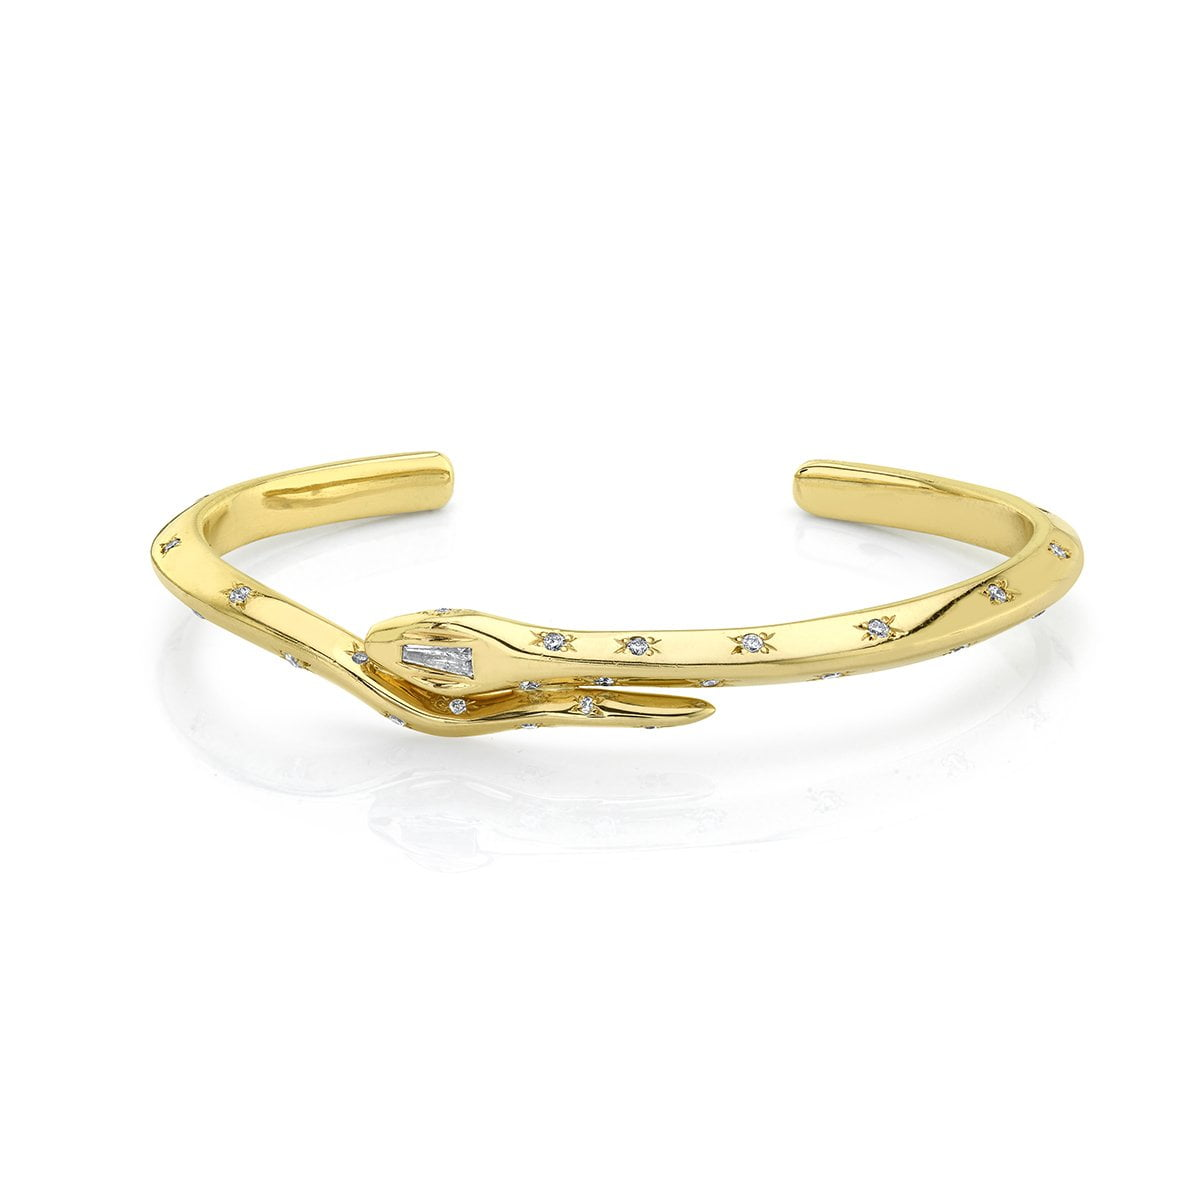 NEW! Kundalini Snake Cuff with Star Set Diamonds